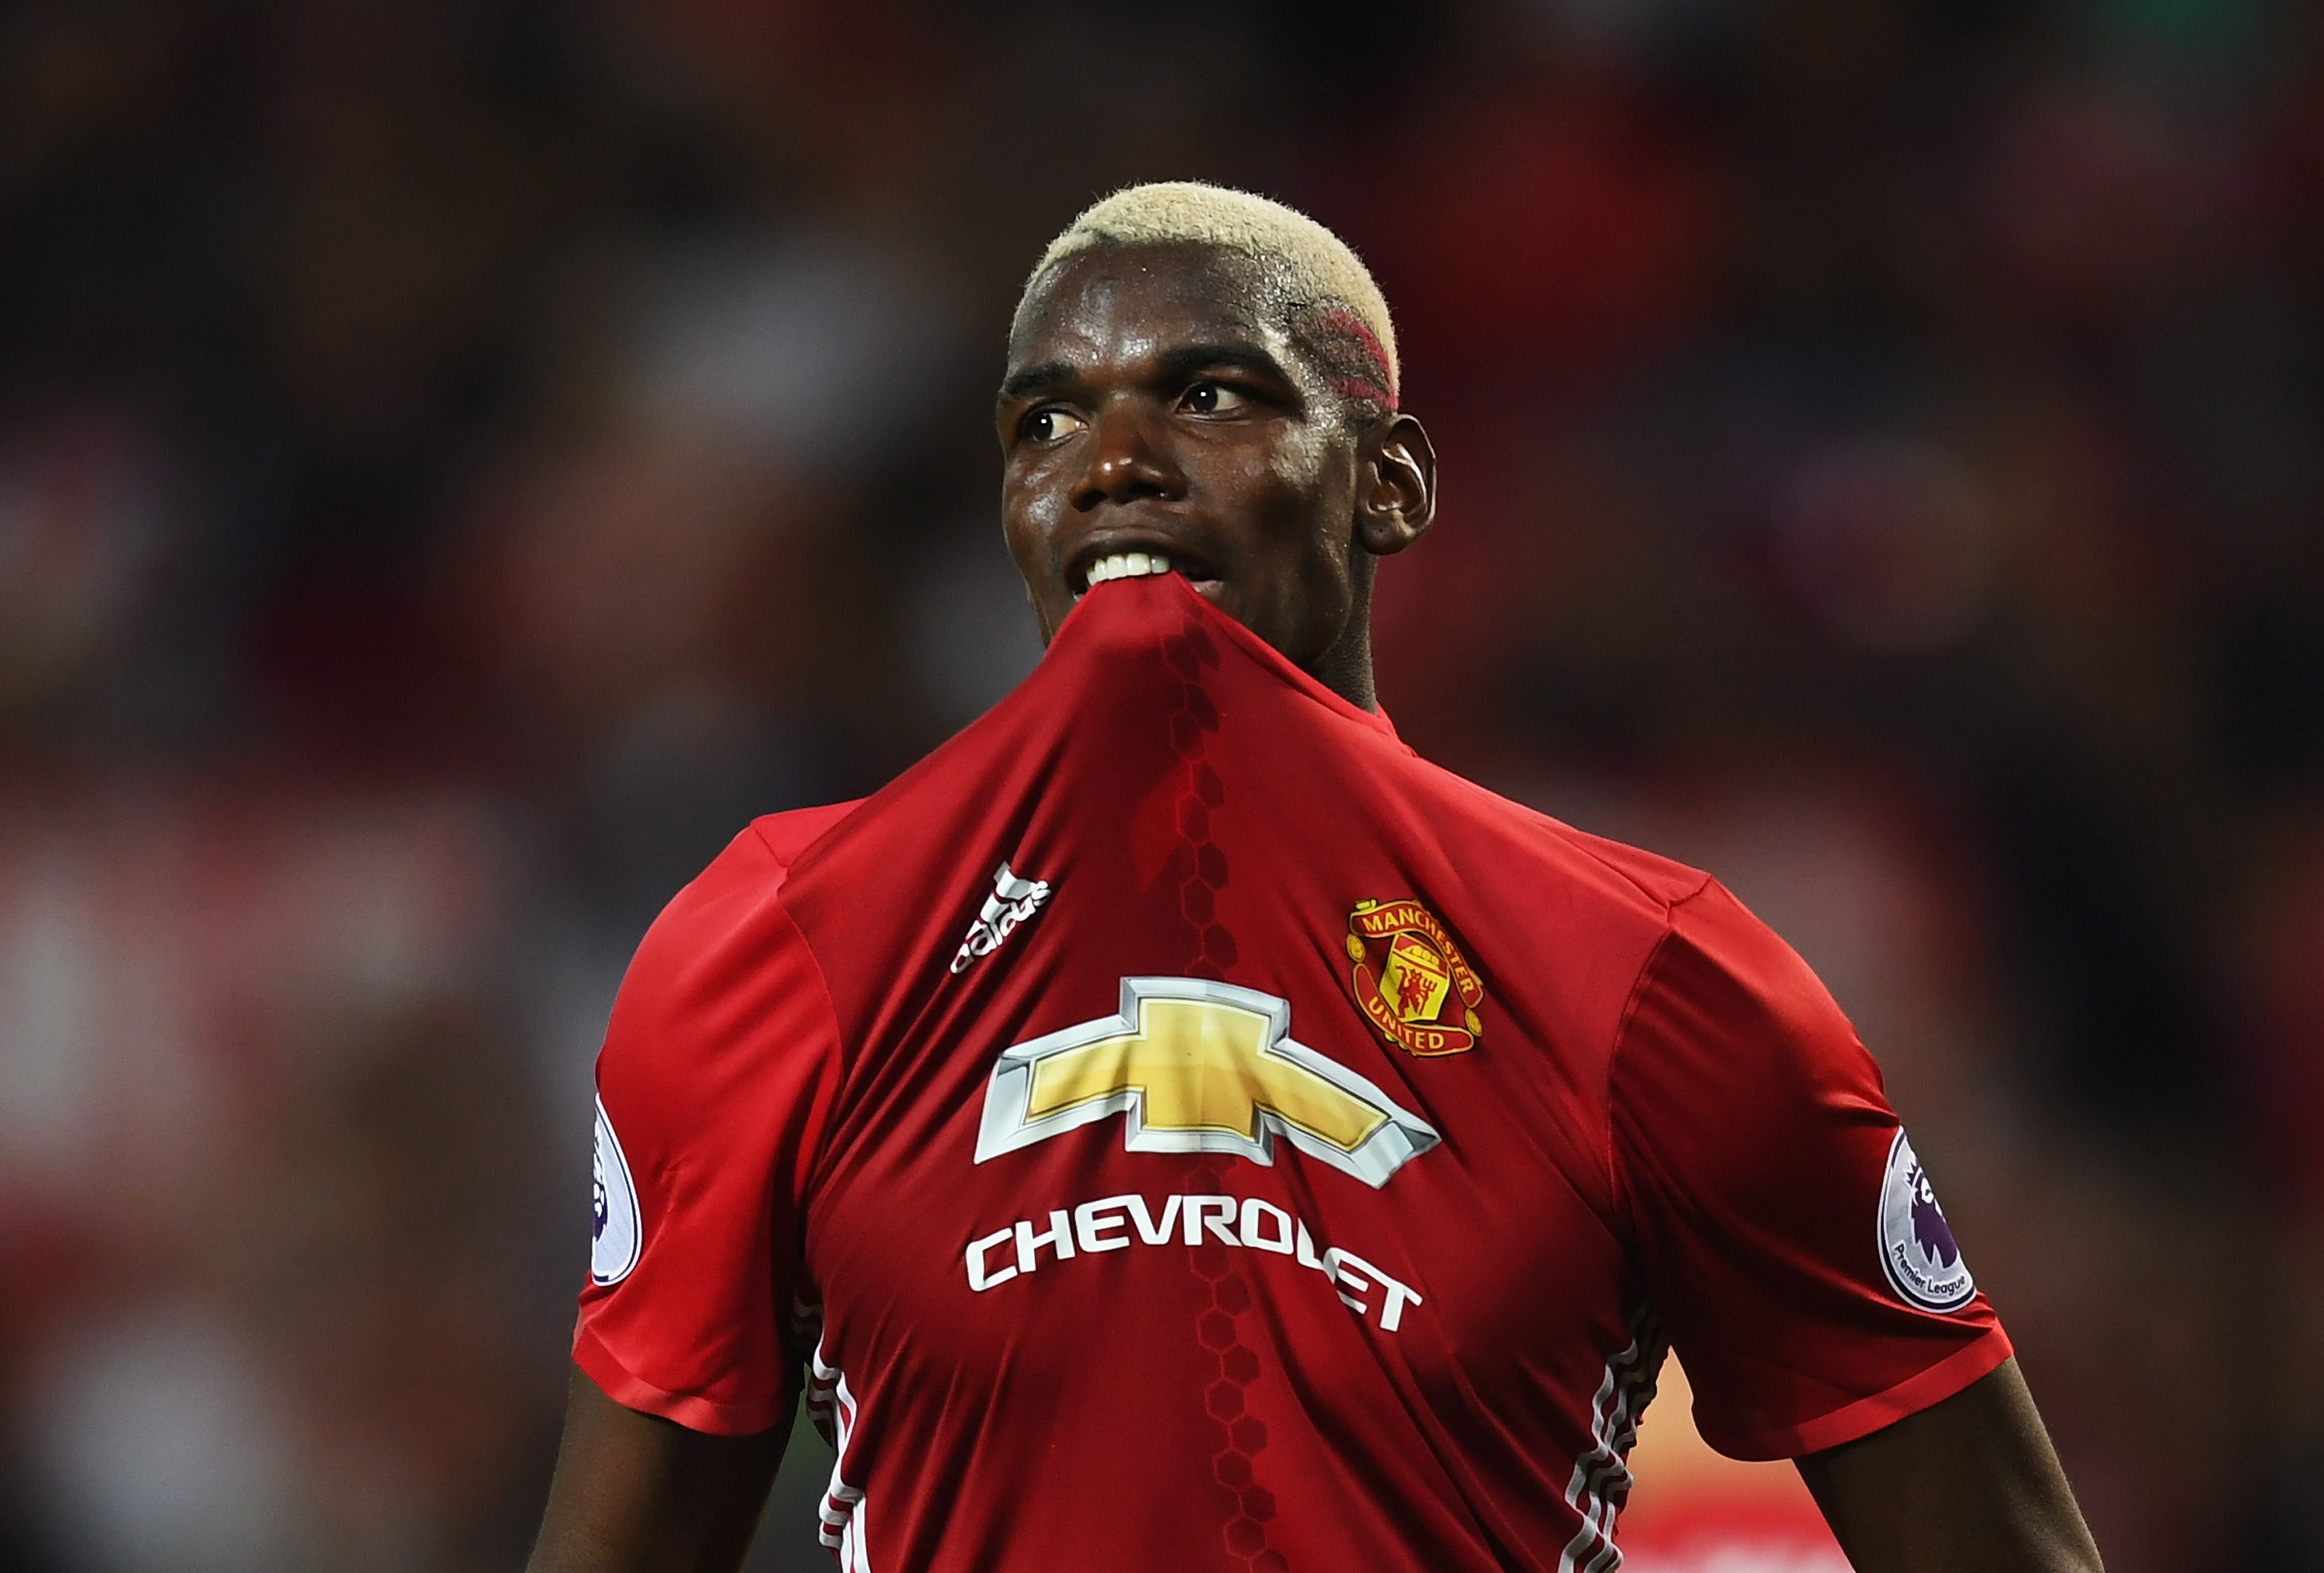 Manchester united Hull City live stream, Hull City-Man United live stream, man united Hull City vivo stream, man united stream, Hull City-Man United watch free, live, man united channel today, Hull City man utd live